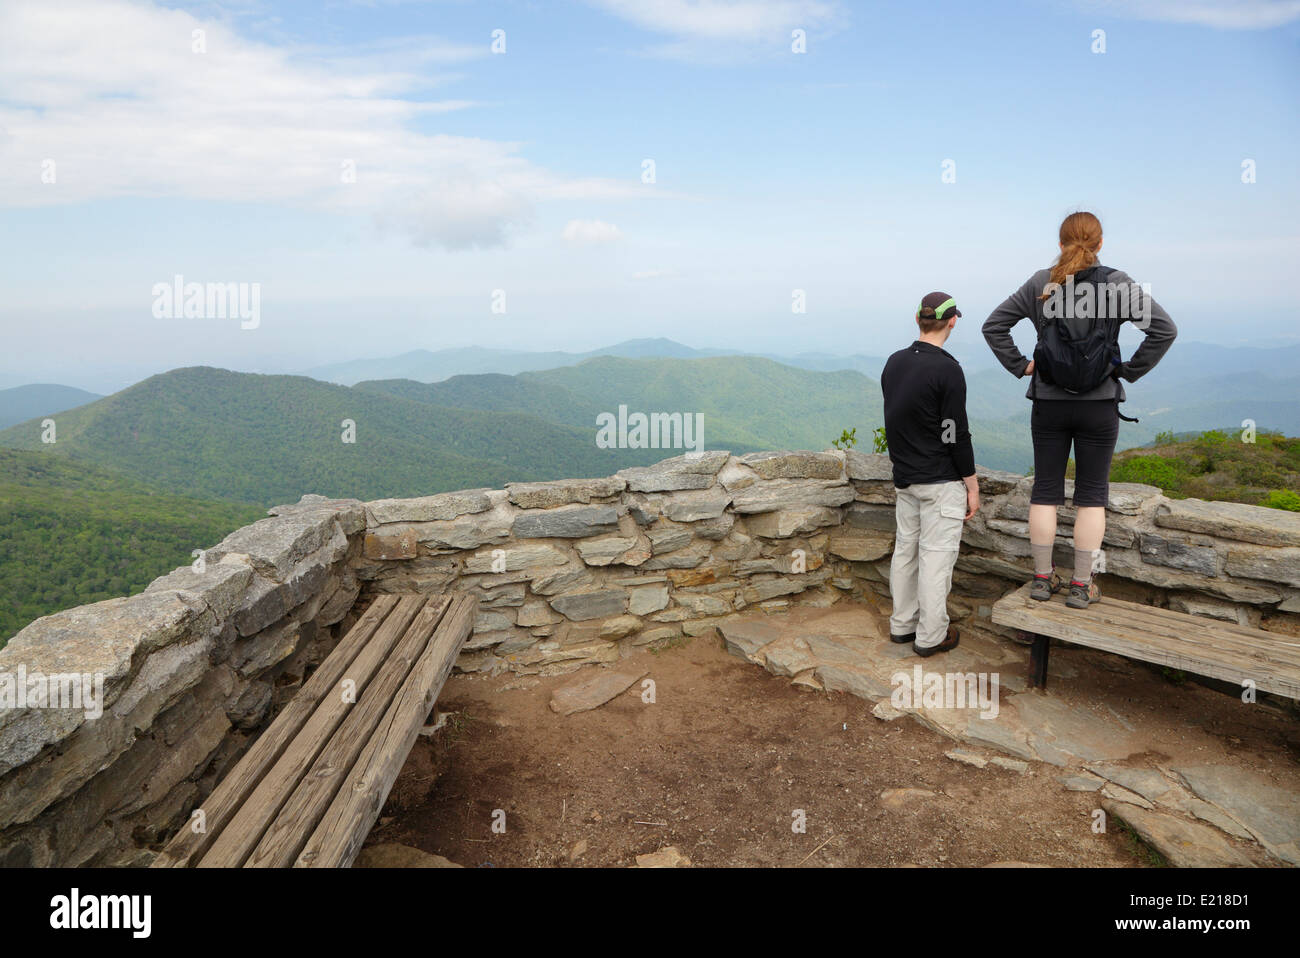 Hikers at the summit of Craggy Pinnacle, Blue Ridge Mountains, Asheville, North Carolina - Stock Image